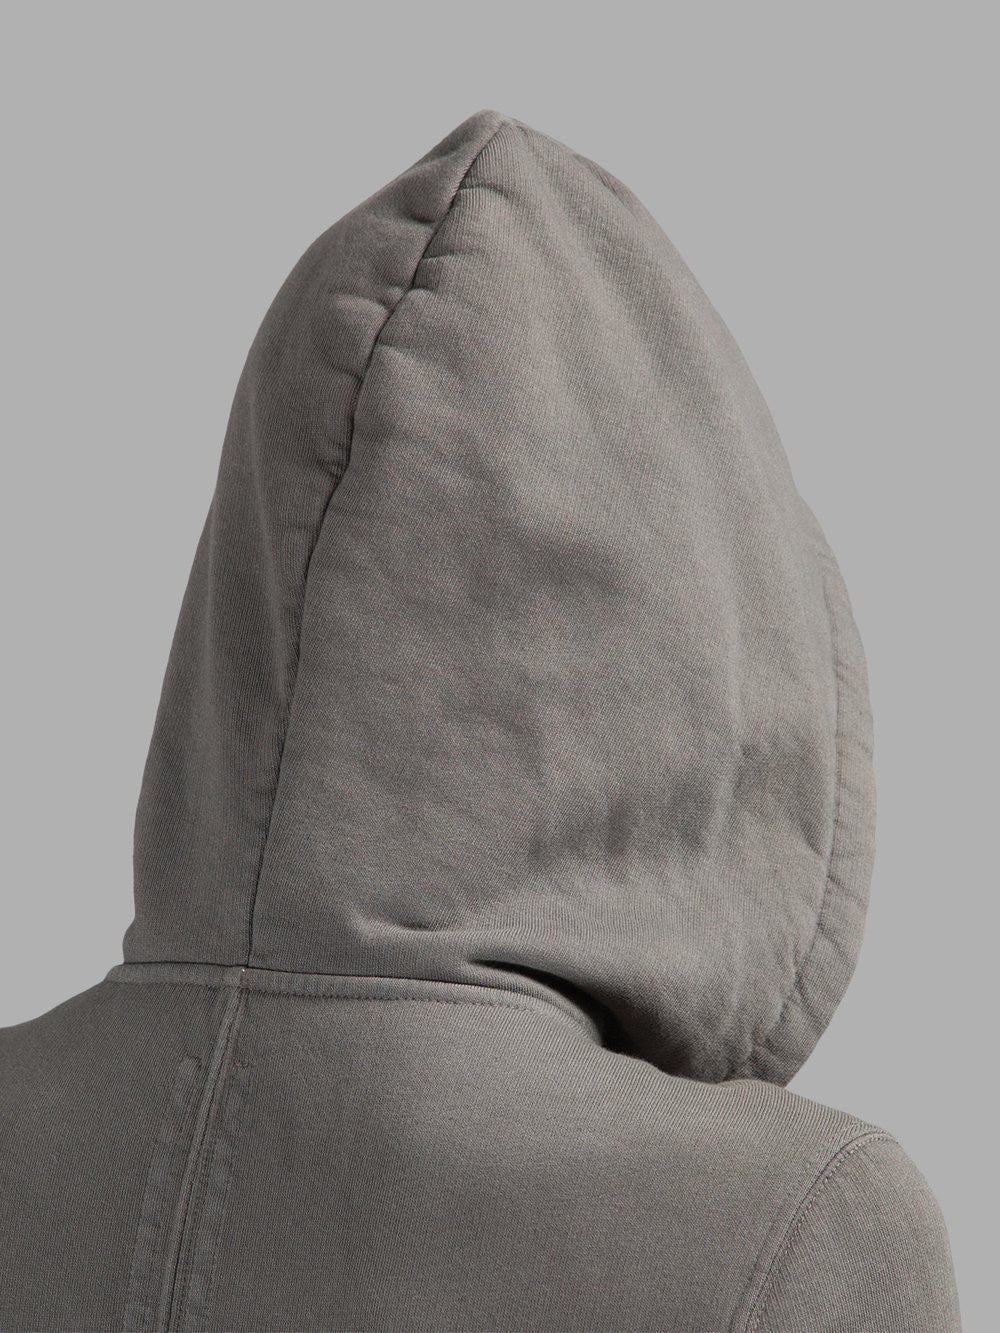 Grey Long Hoodie /Zip Closure  /Two Side Pockets /  Asymmetric Raw Cut Sleeve Seam